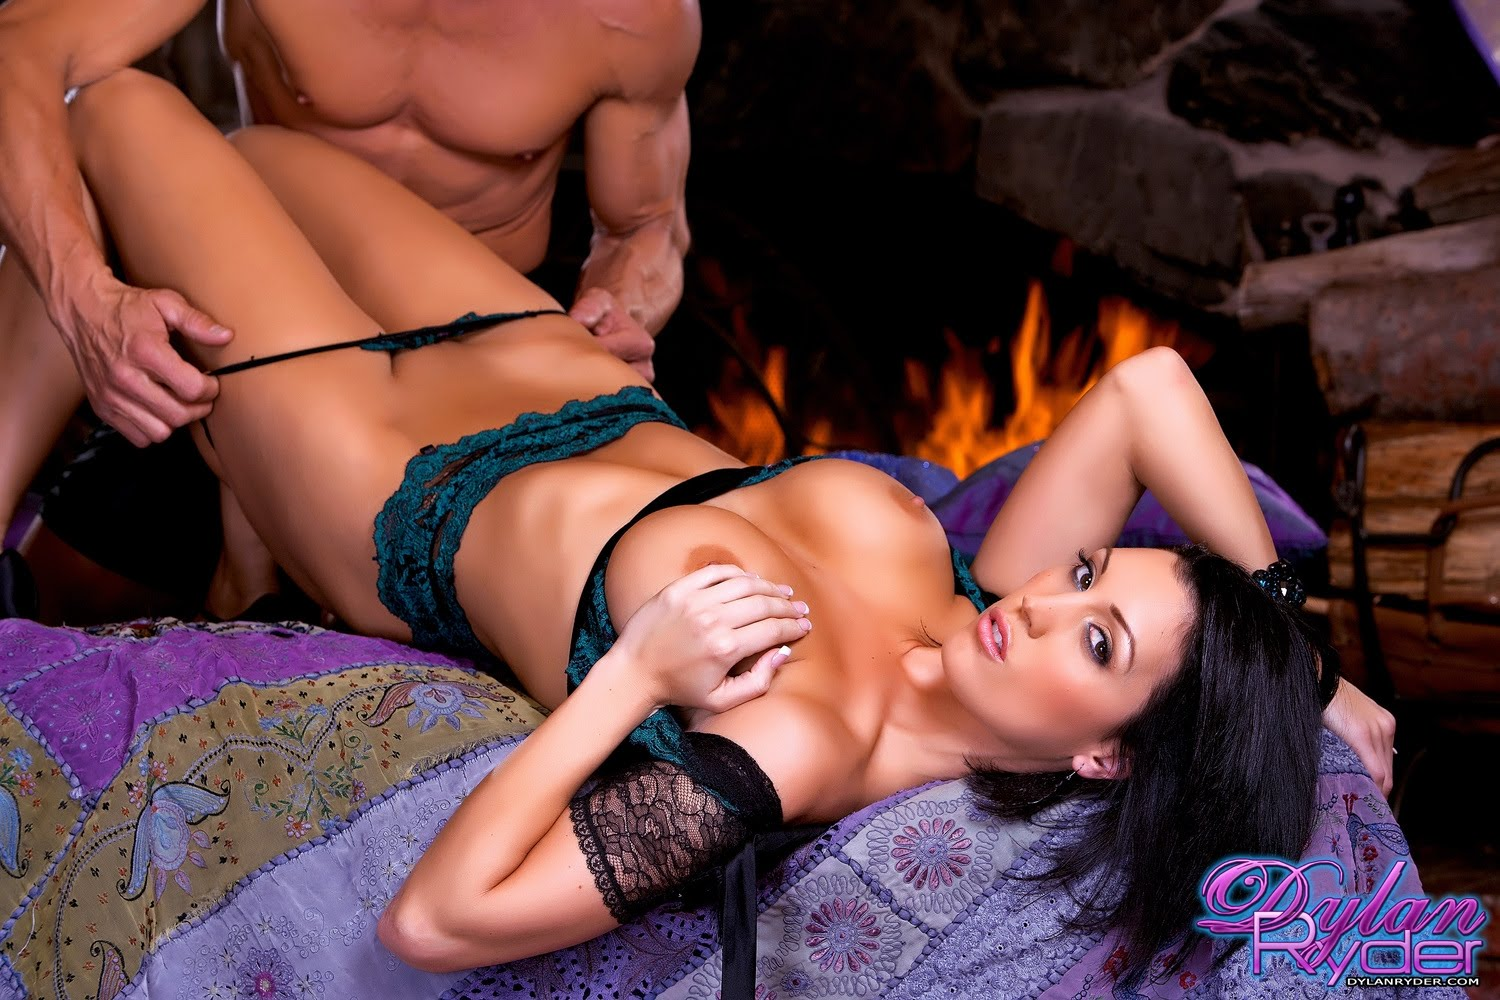 dylan ryder and tommy gunn get it on